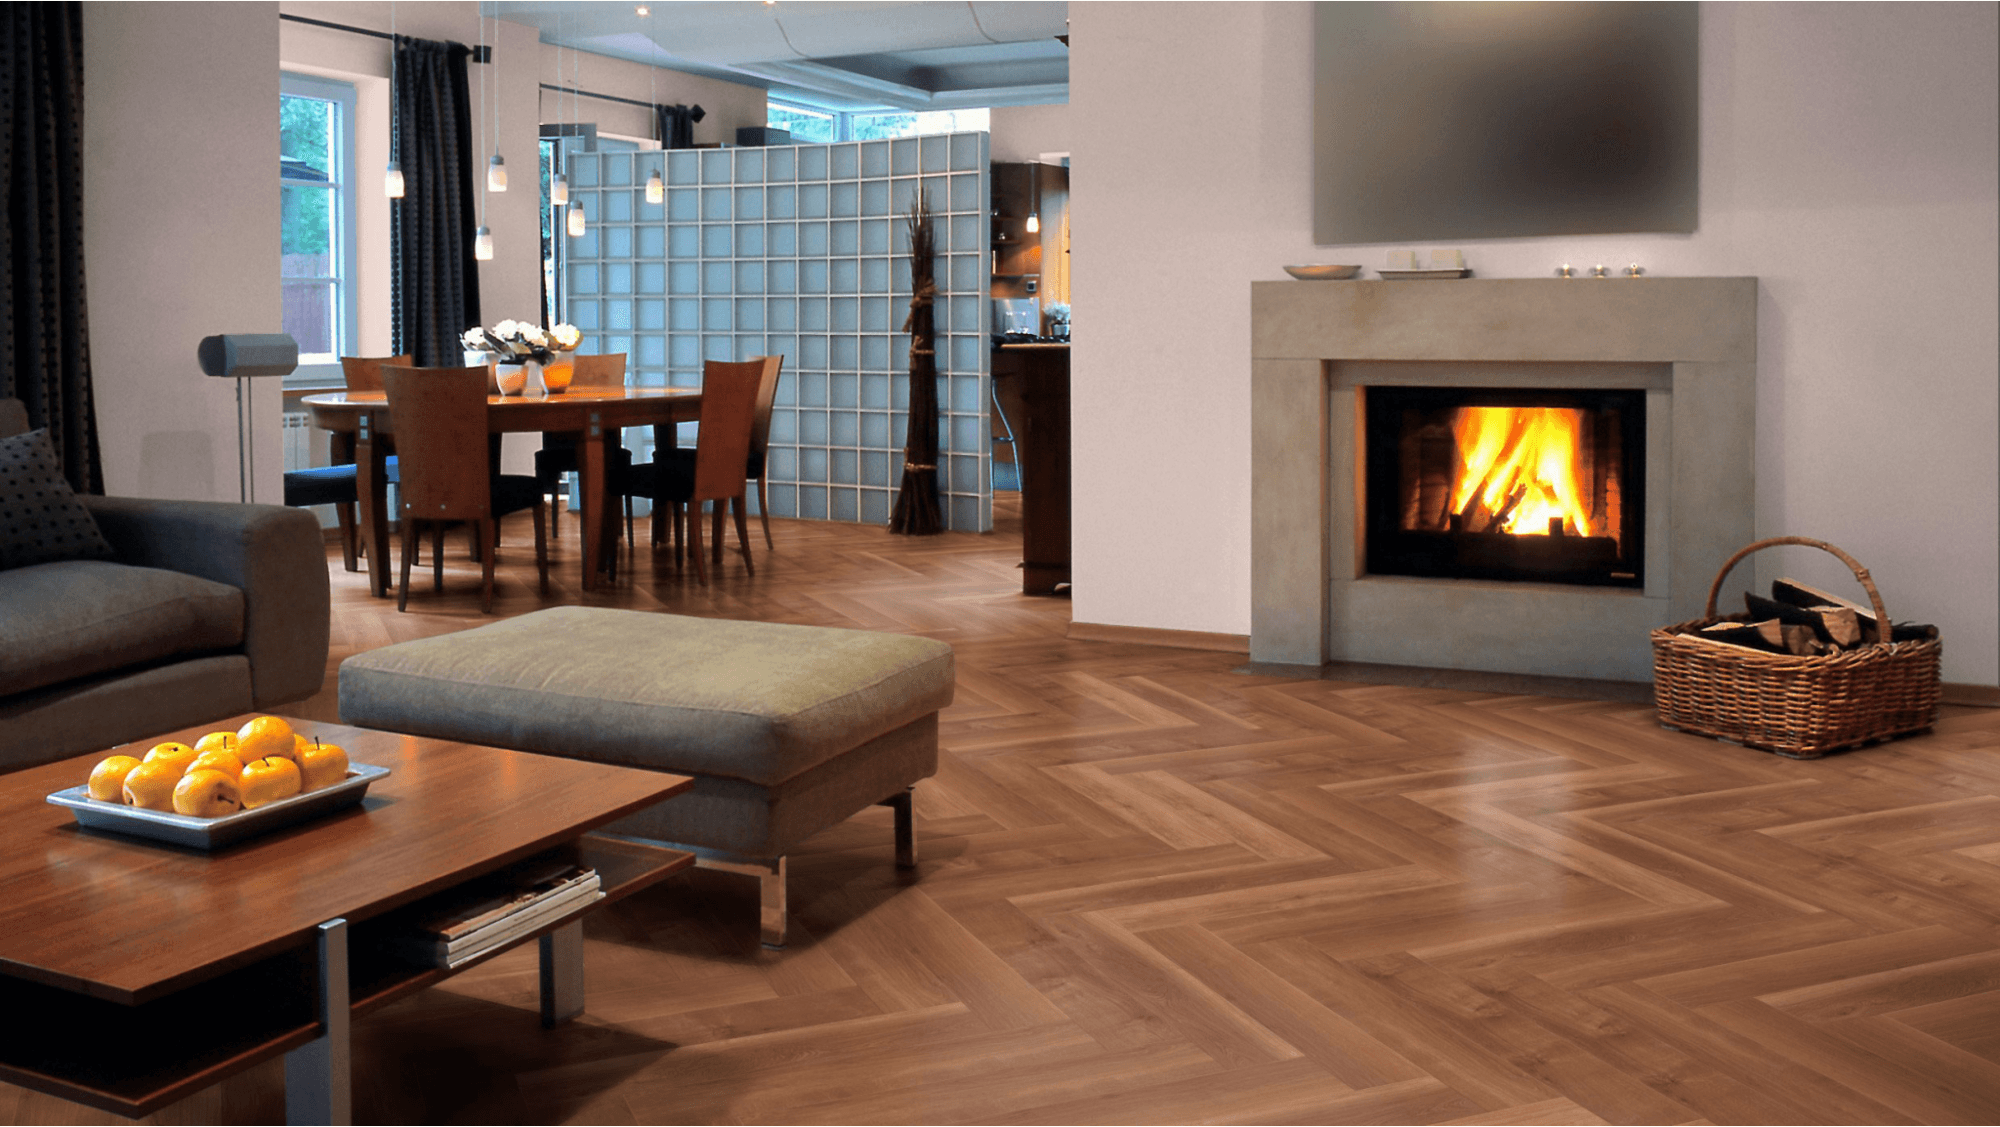 Mflor 40813 parva plus dark sycamore online kopen luxury floors